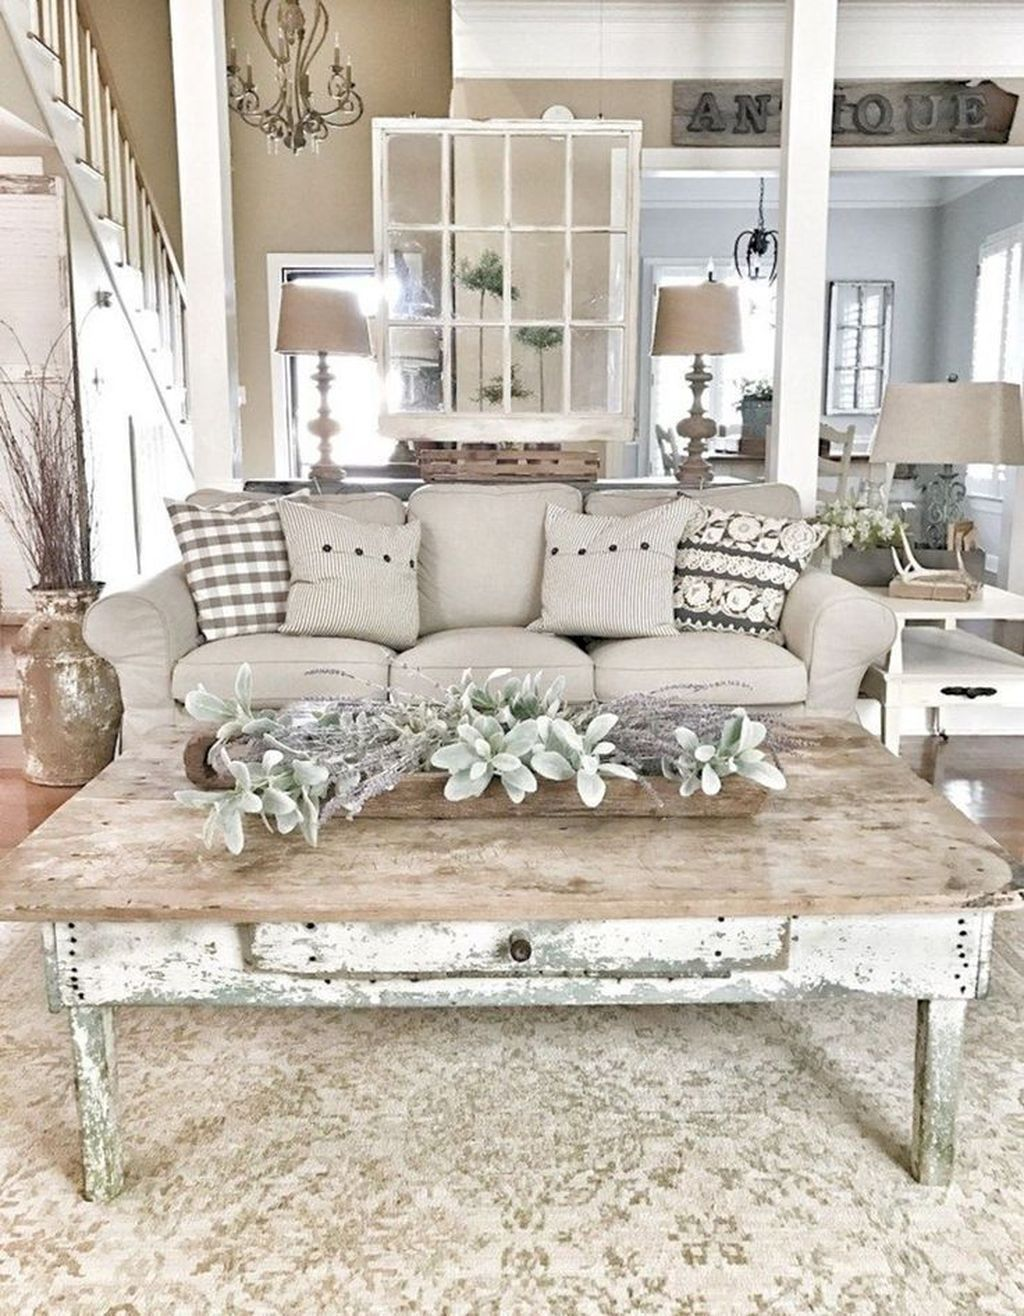 80+ UNIQUE RUSTIC LIVING ROOM DECOR AND DESIGN IDEAS - Decorating Ideas - Home Decor Ideas and Tips